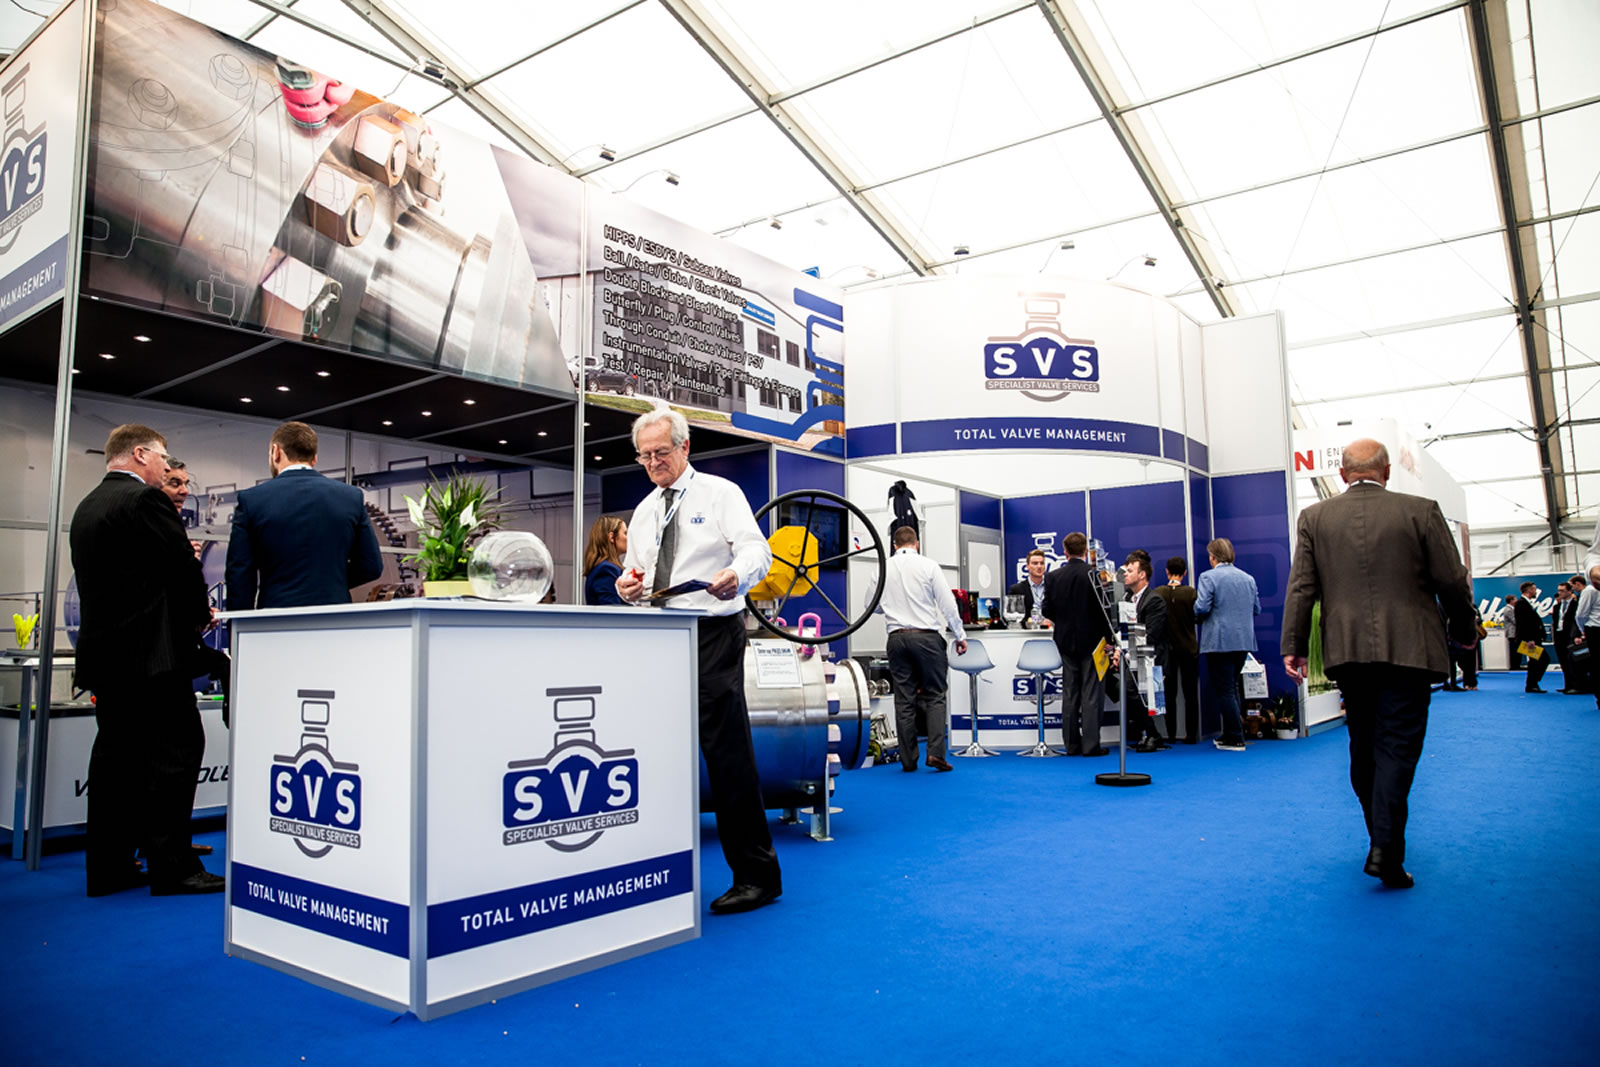 SVS Exhibit at Offshore Europe 2015-image-3